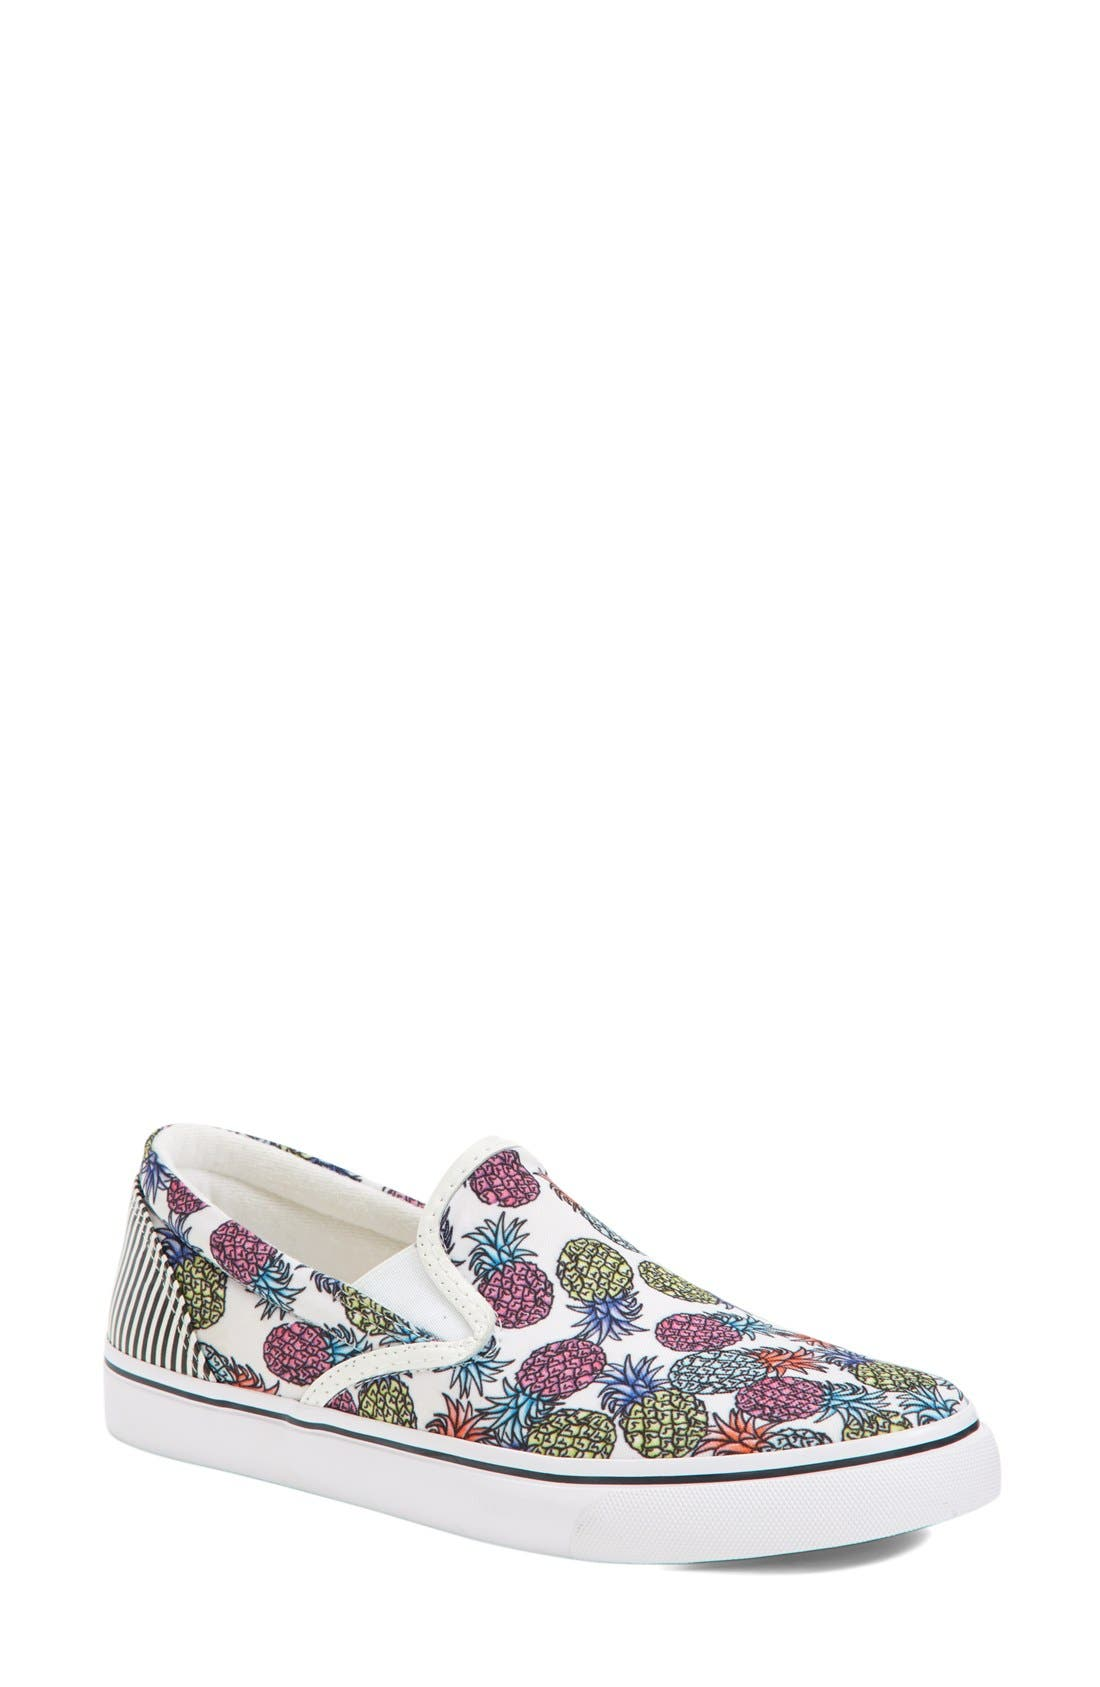 Alternate Image 1 Selected - Sophia Webster 'Adele - Pineapple' Satin Slip-On Sneaker (Women)